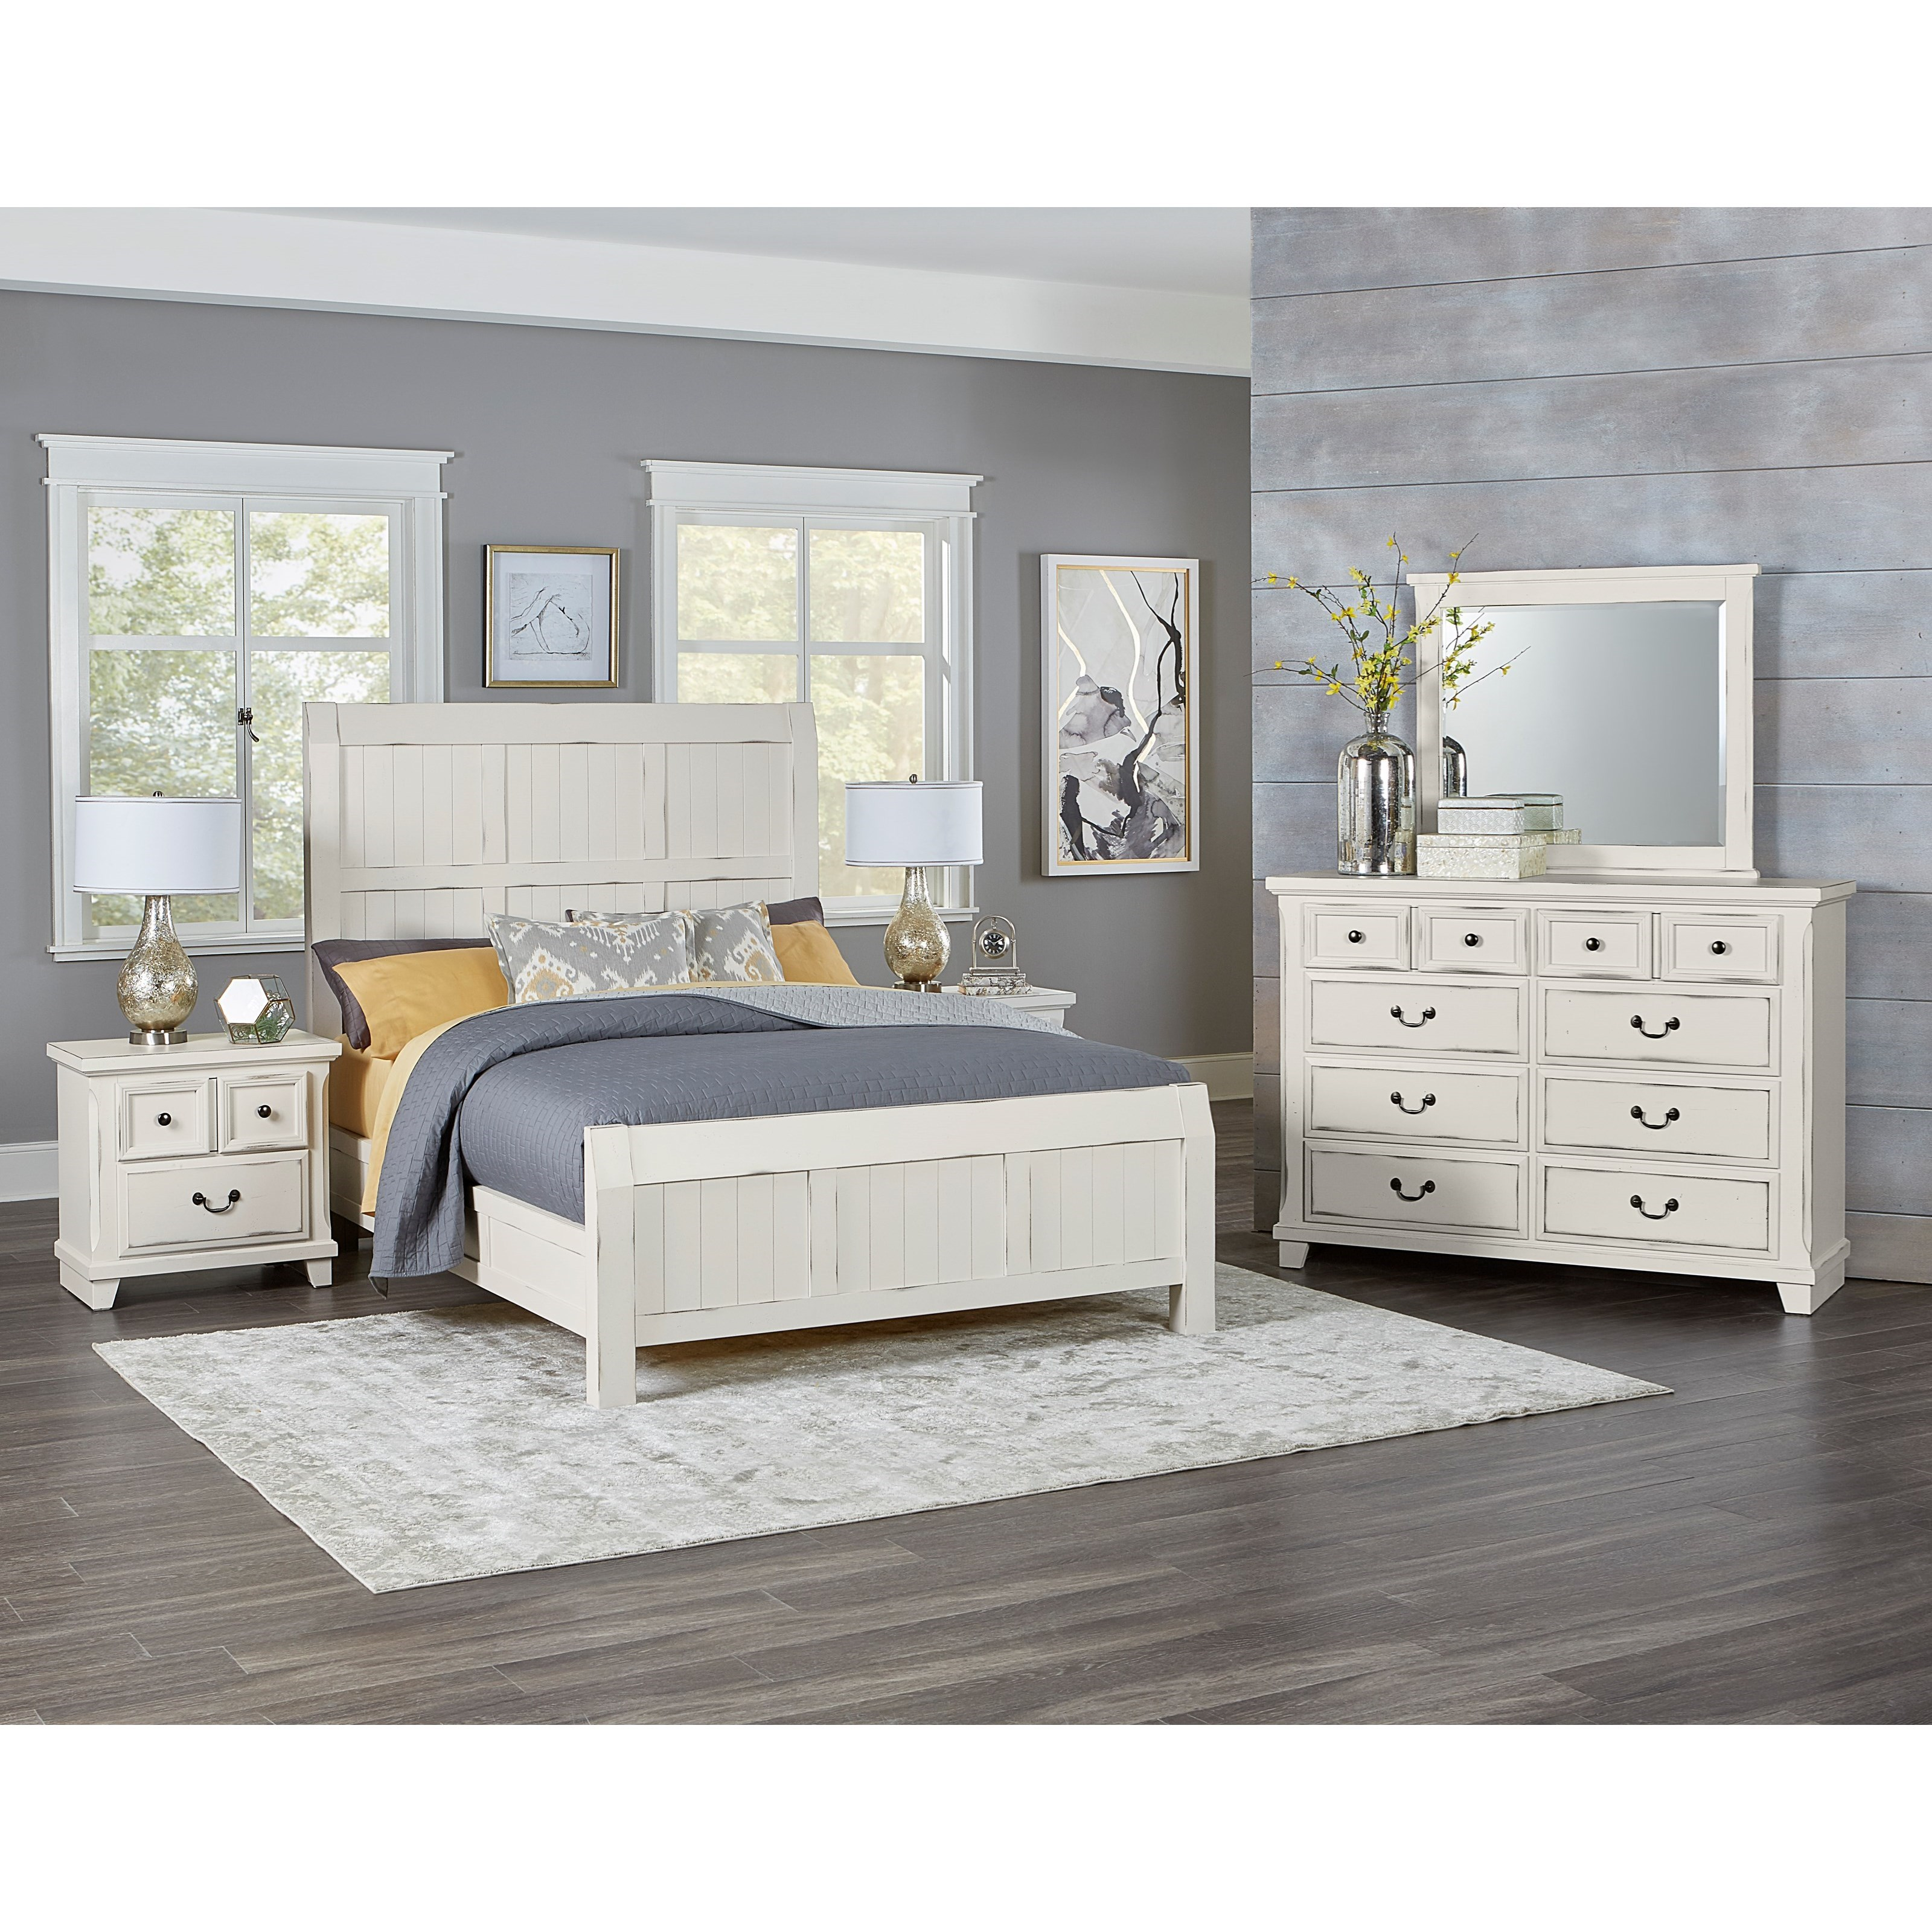 Vaughan Bassett Timber Creek Queen Bedroom Group Belfort Furniture Bedroom Groups